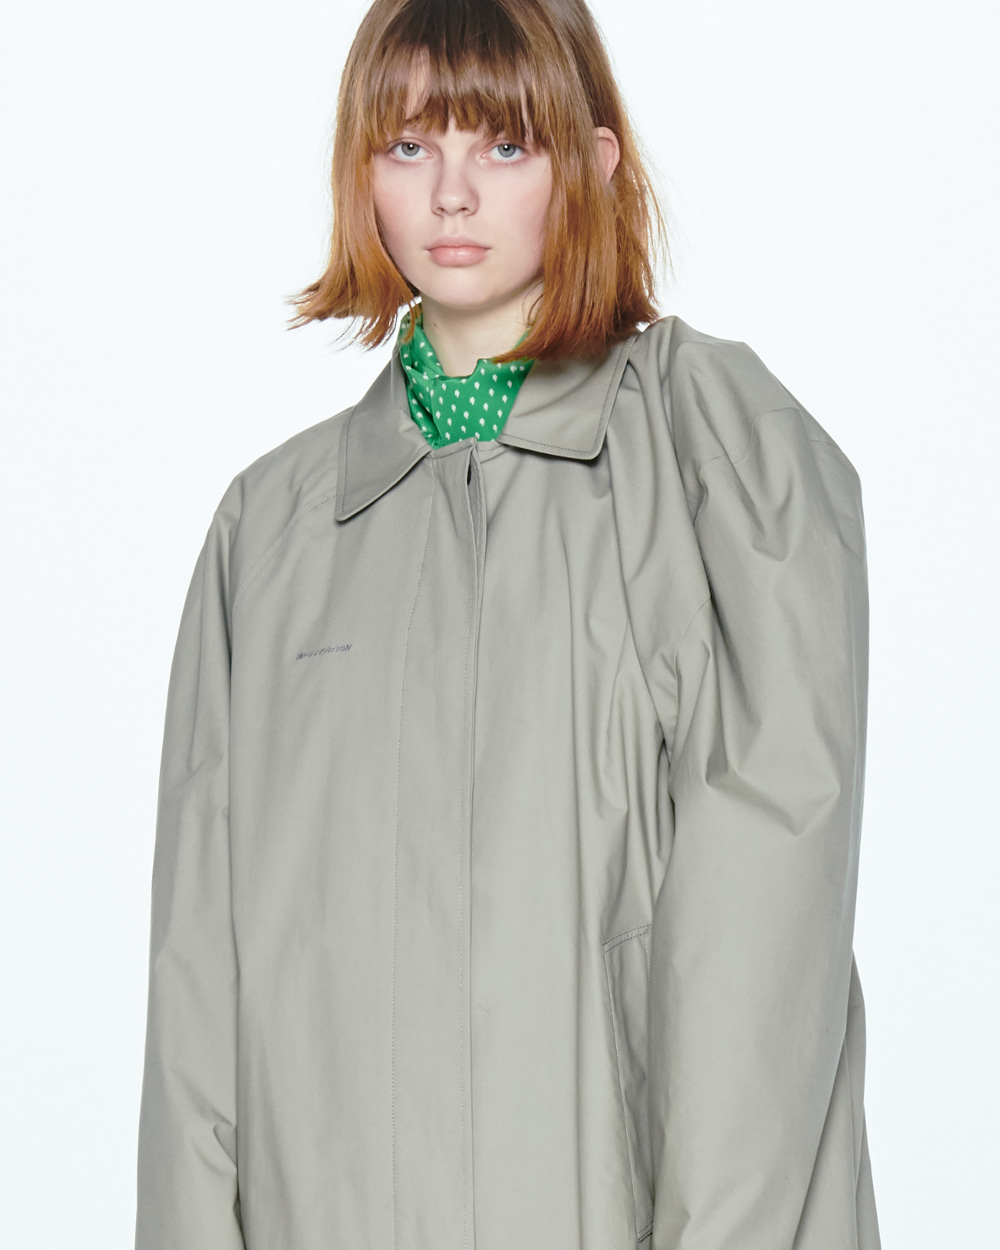 SS20 UNBALANCE SHOULDER GRAY COAT